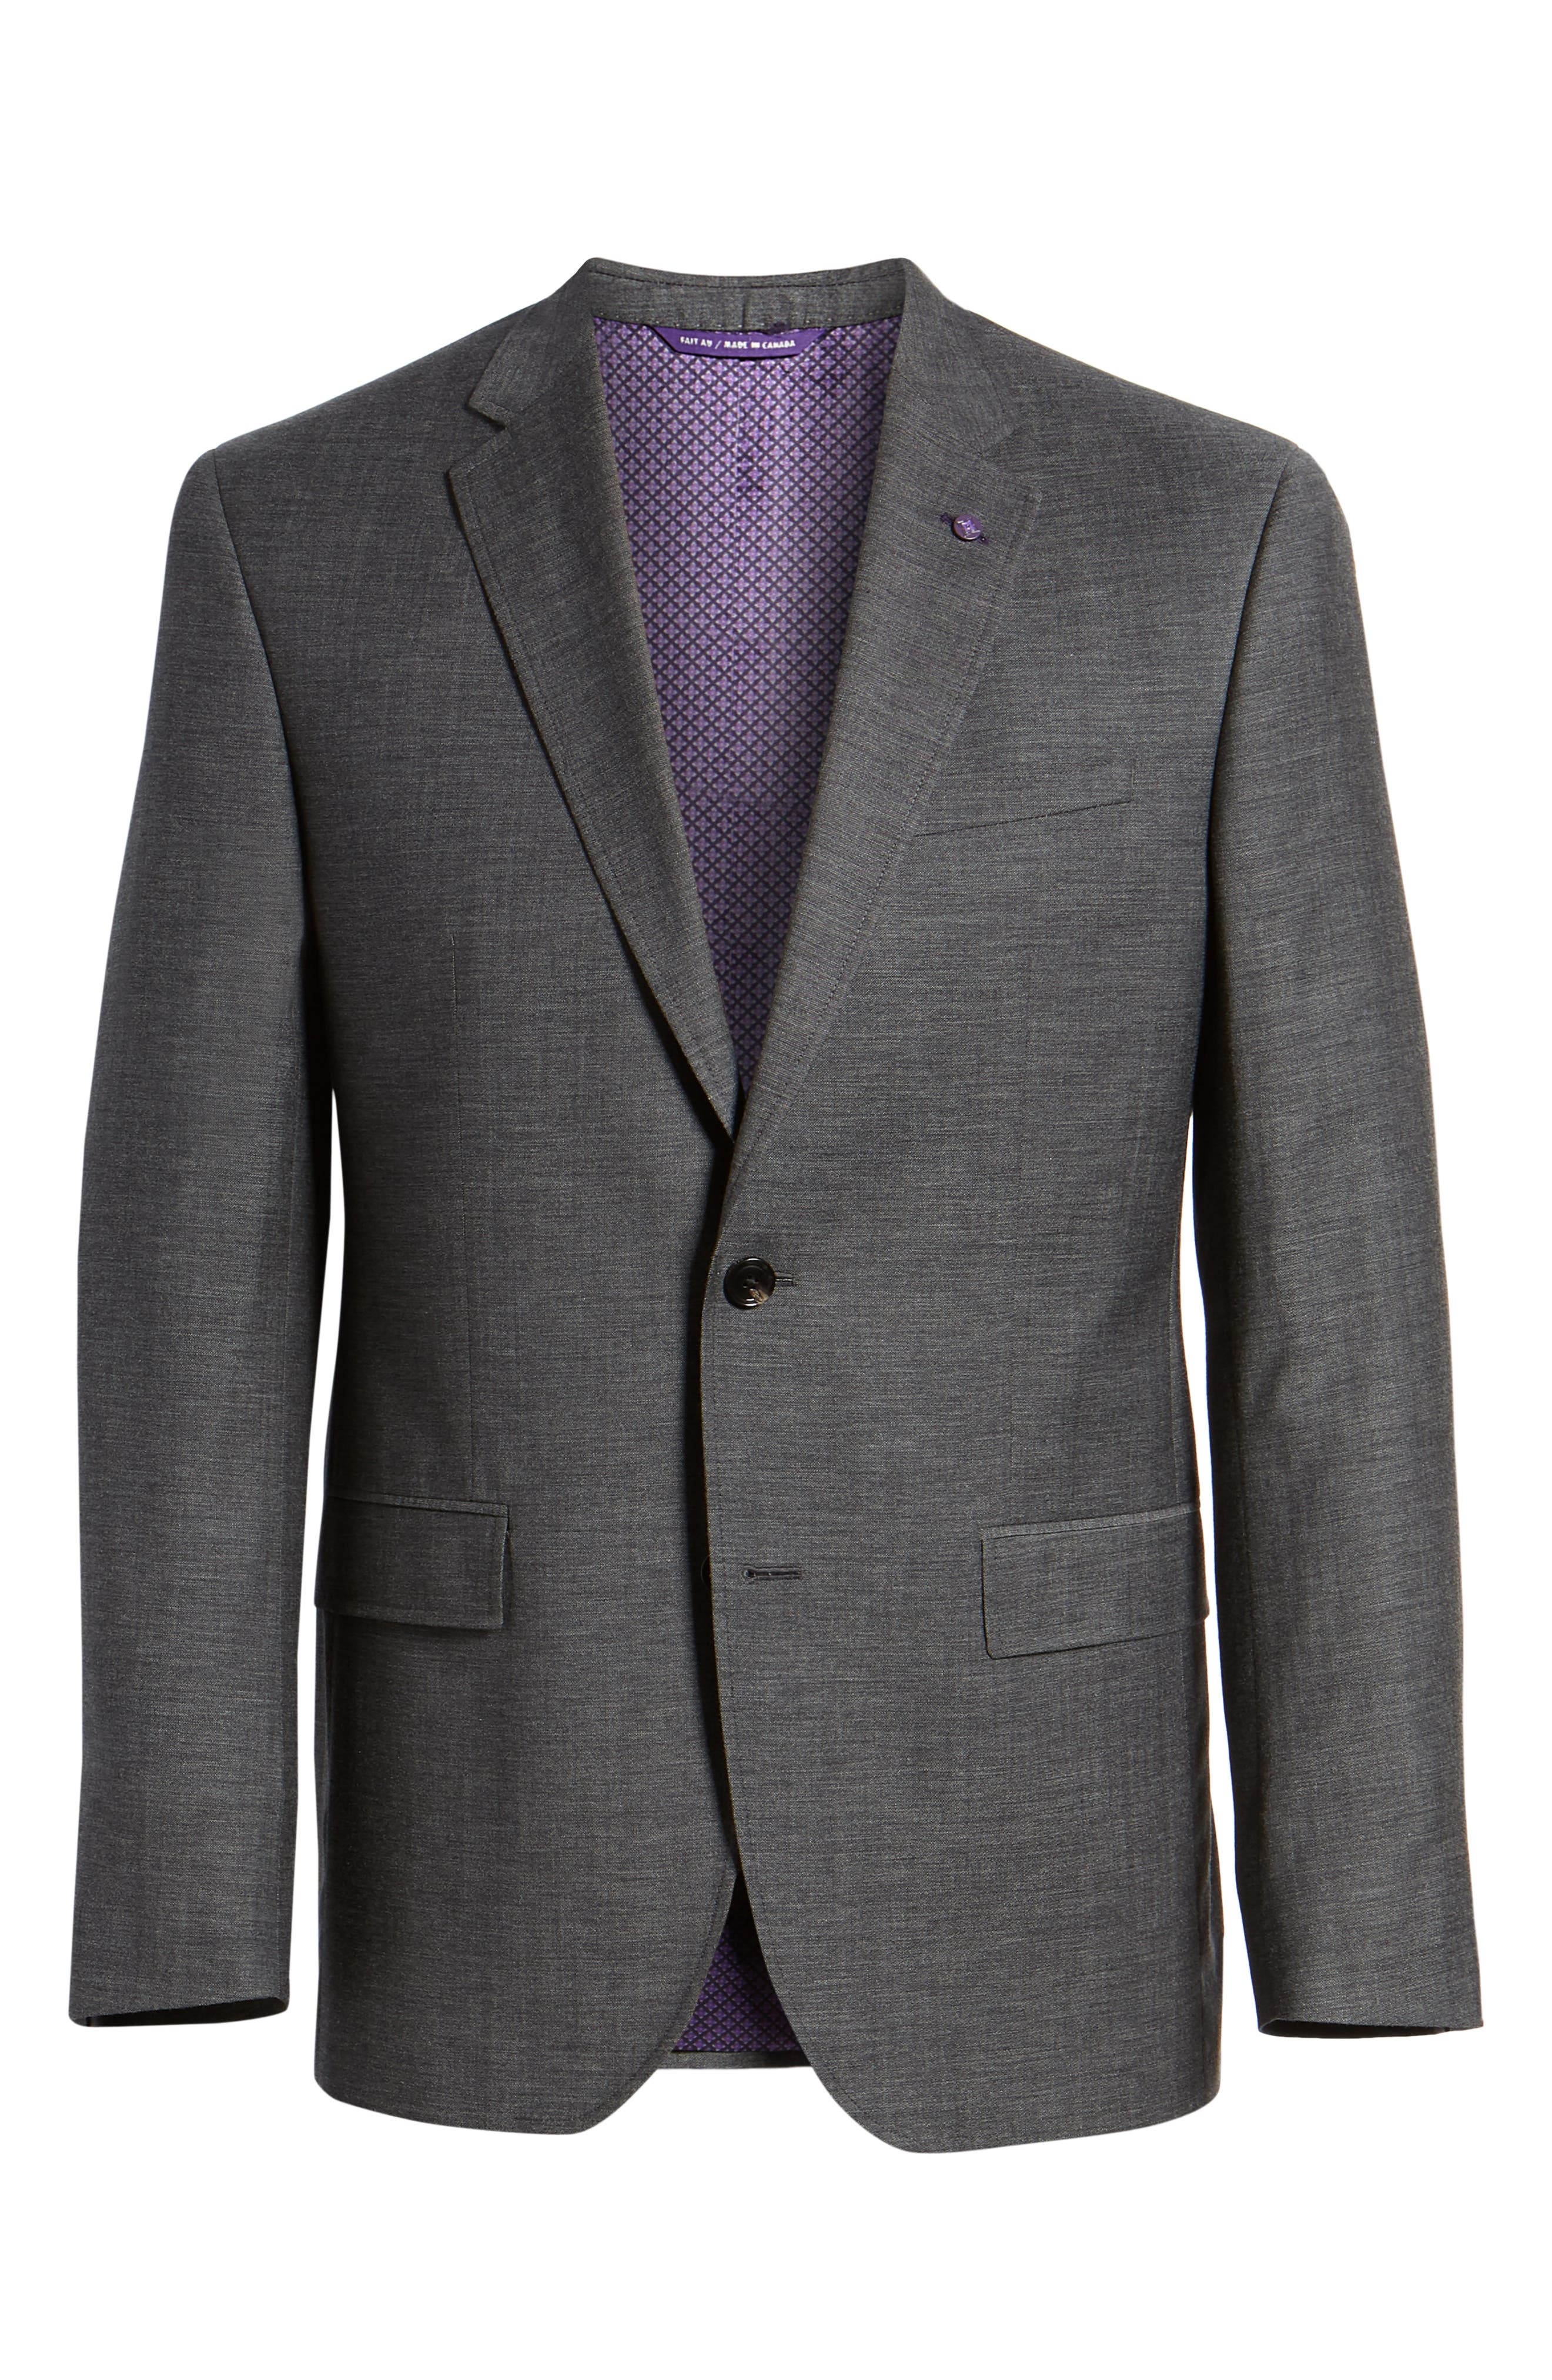 Jay Trim Fit Heathered Wool & Cotton Sport Coat,                             Alternate thumbnail 6, color,                             Grey